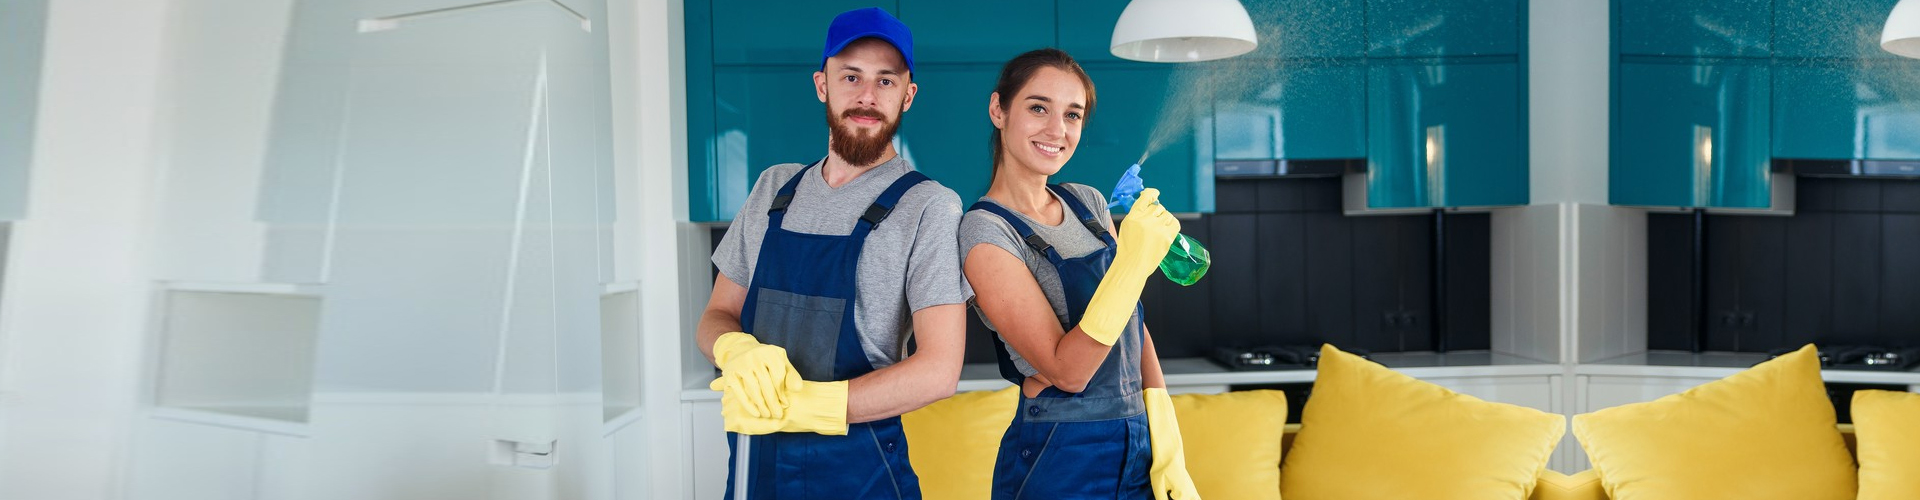 cleaning services workers smiling